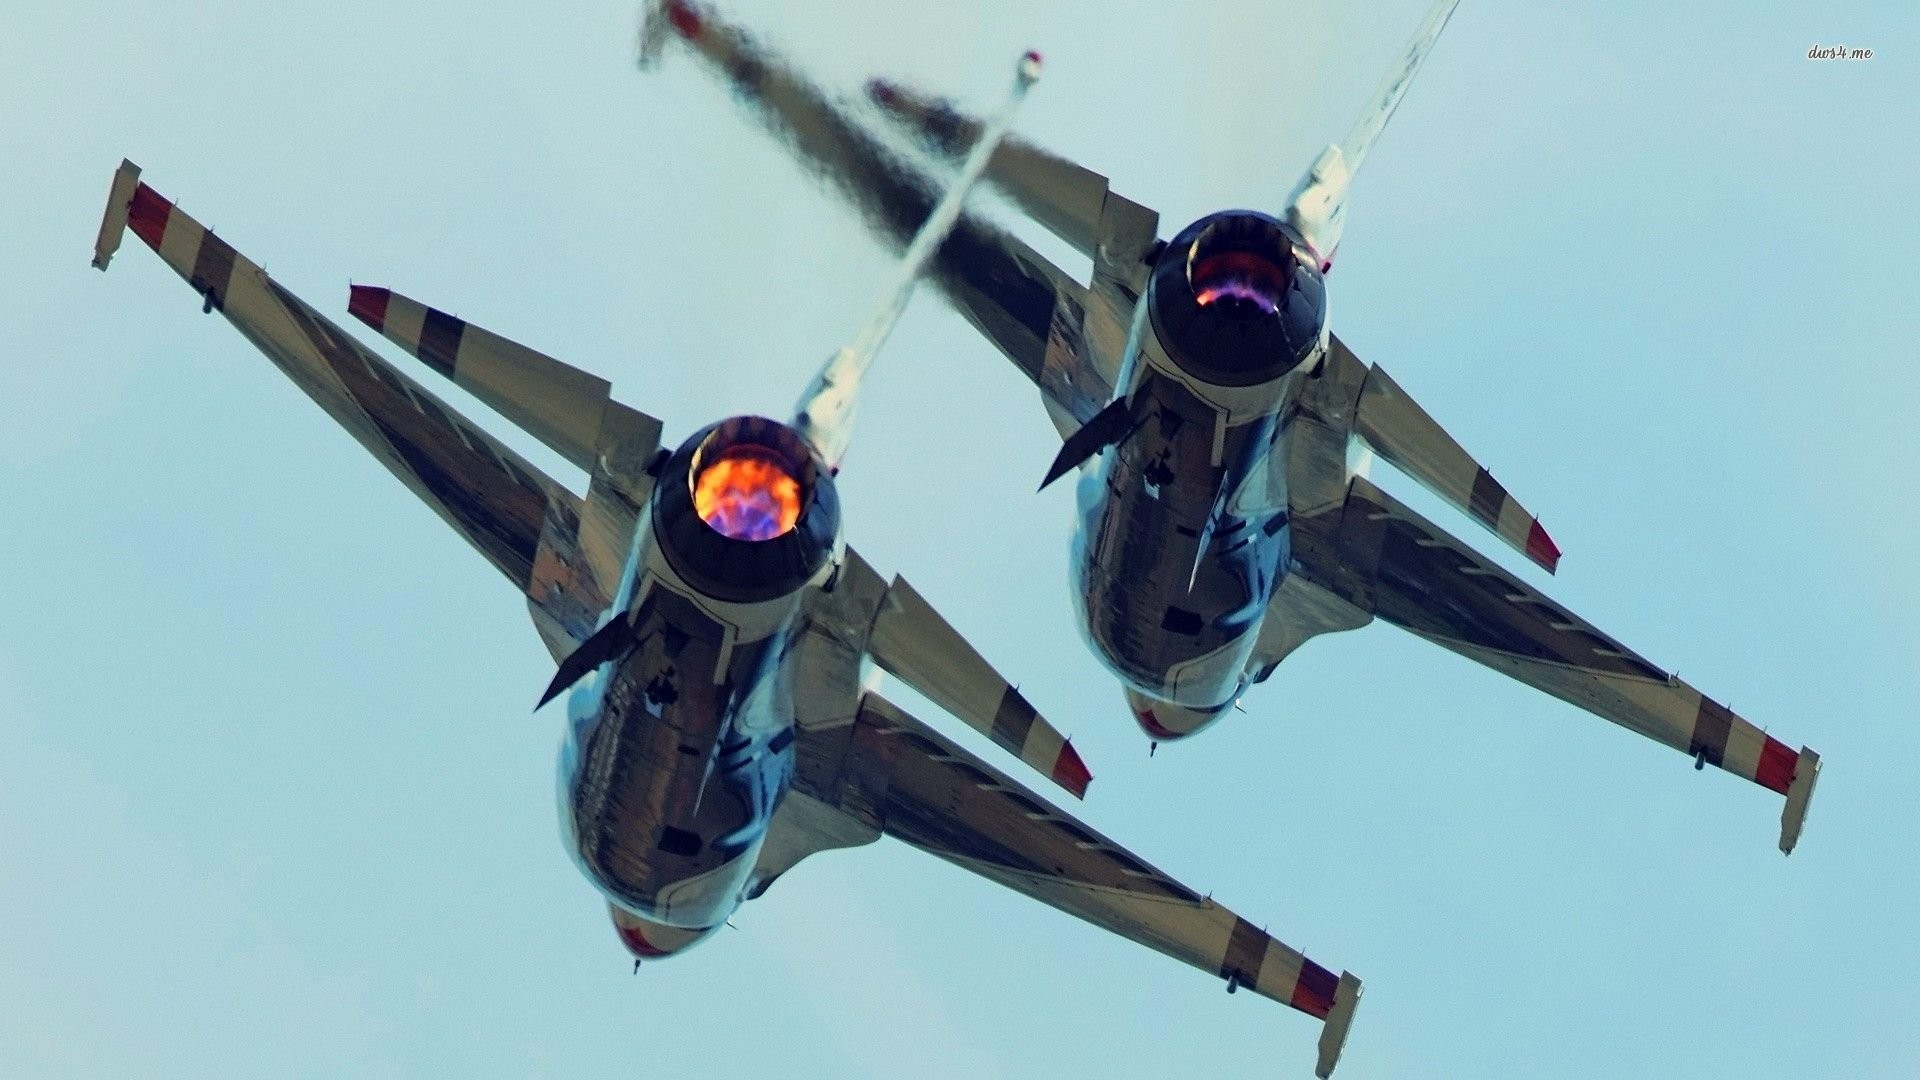 Military – General Dynamics F-16 Fighting Falcon Airplane Wallpaper